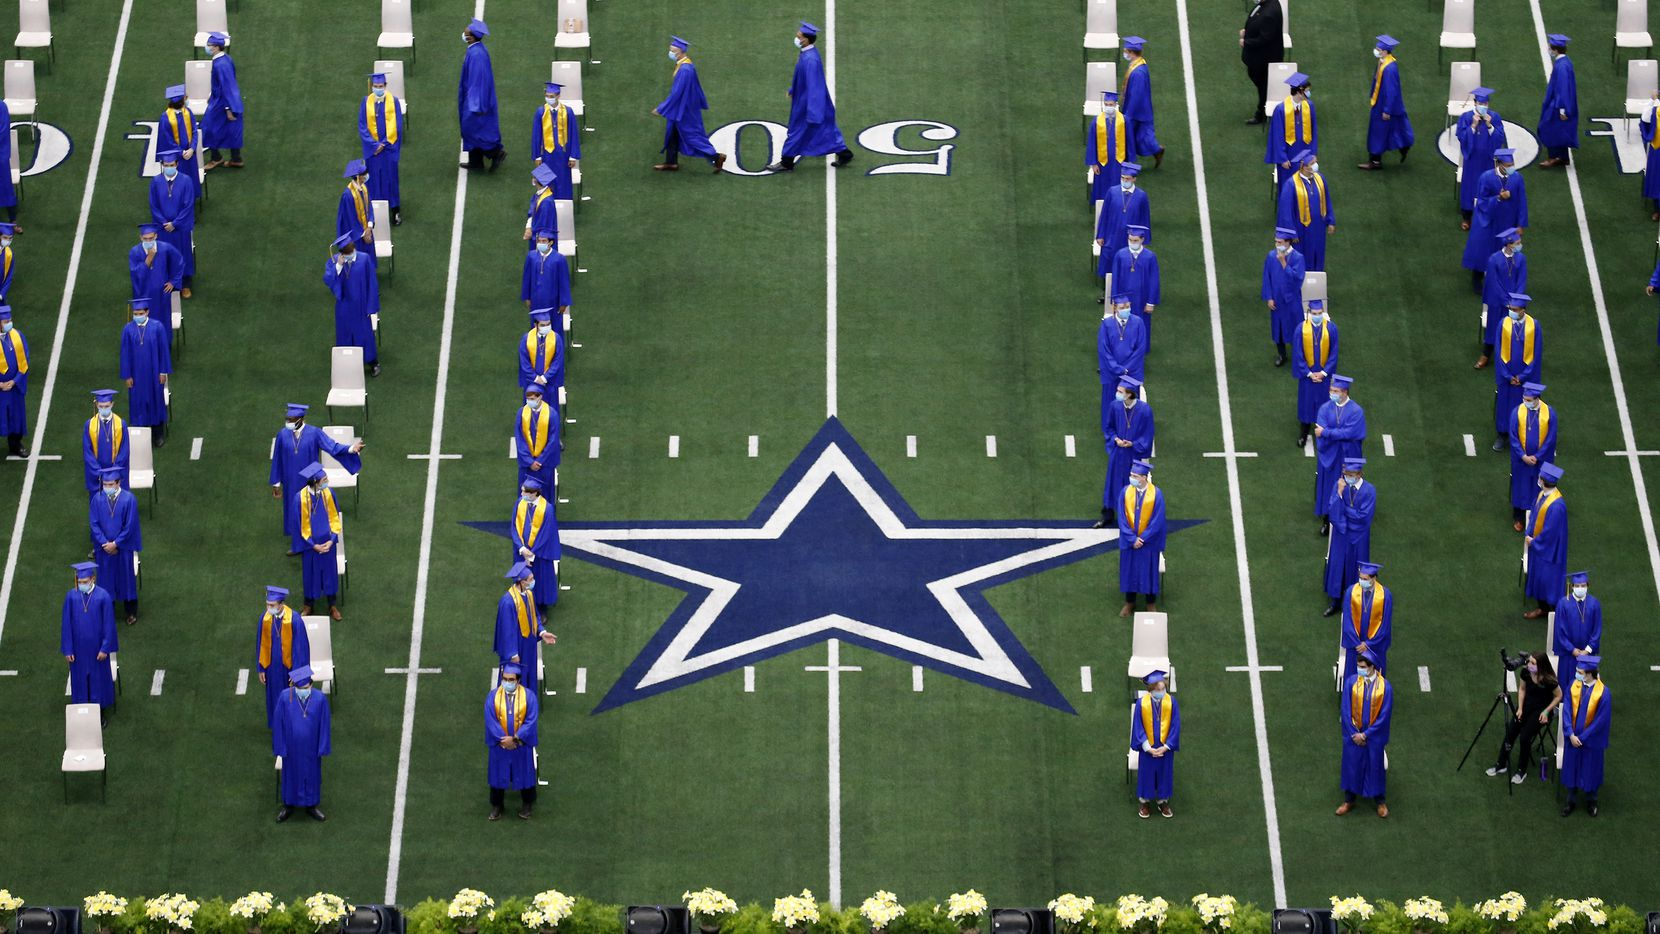 Graduates from the Jesuit College Preparatory School of Dallas file into their socially-distanced seats for commencement last year in this file photo. Currently, all 10 Frisco ISD high schools are scheduled to have an in-person graduation this year at the Ford Center at The Star.